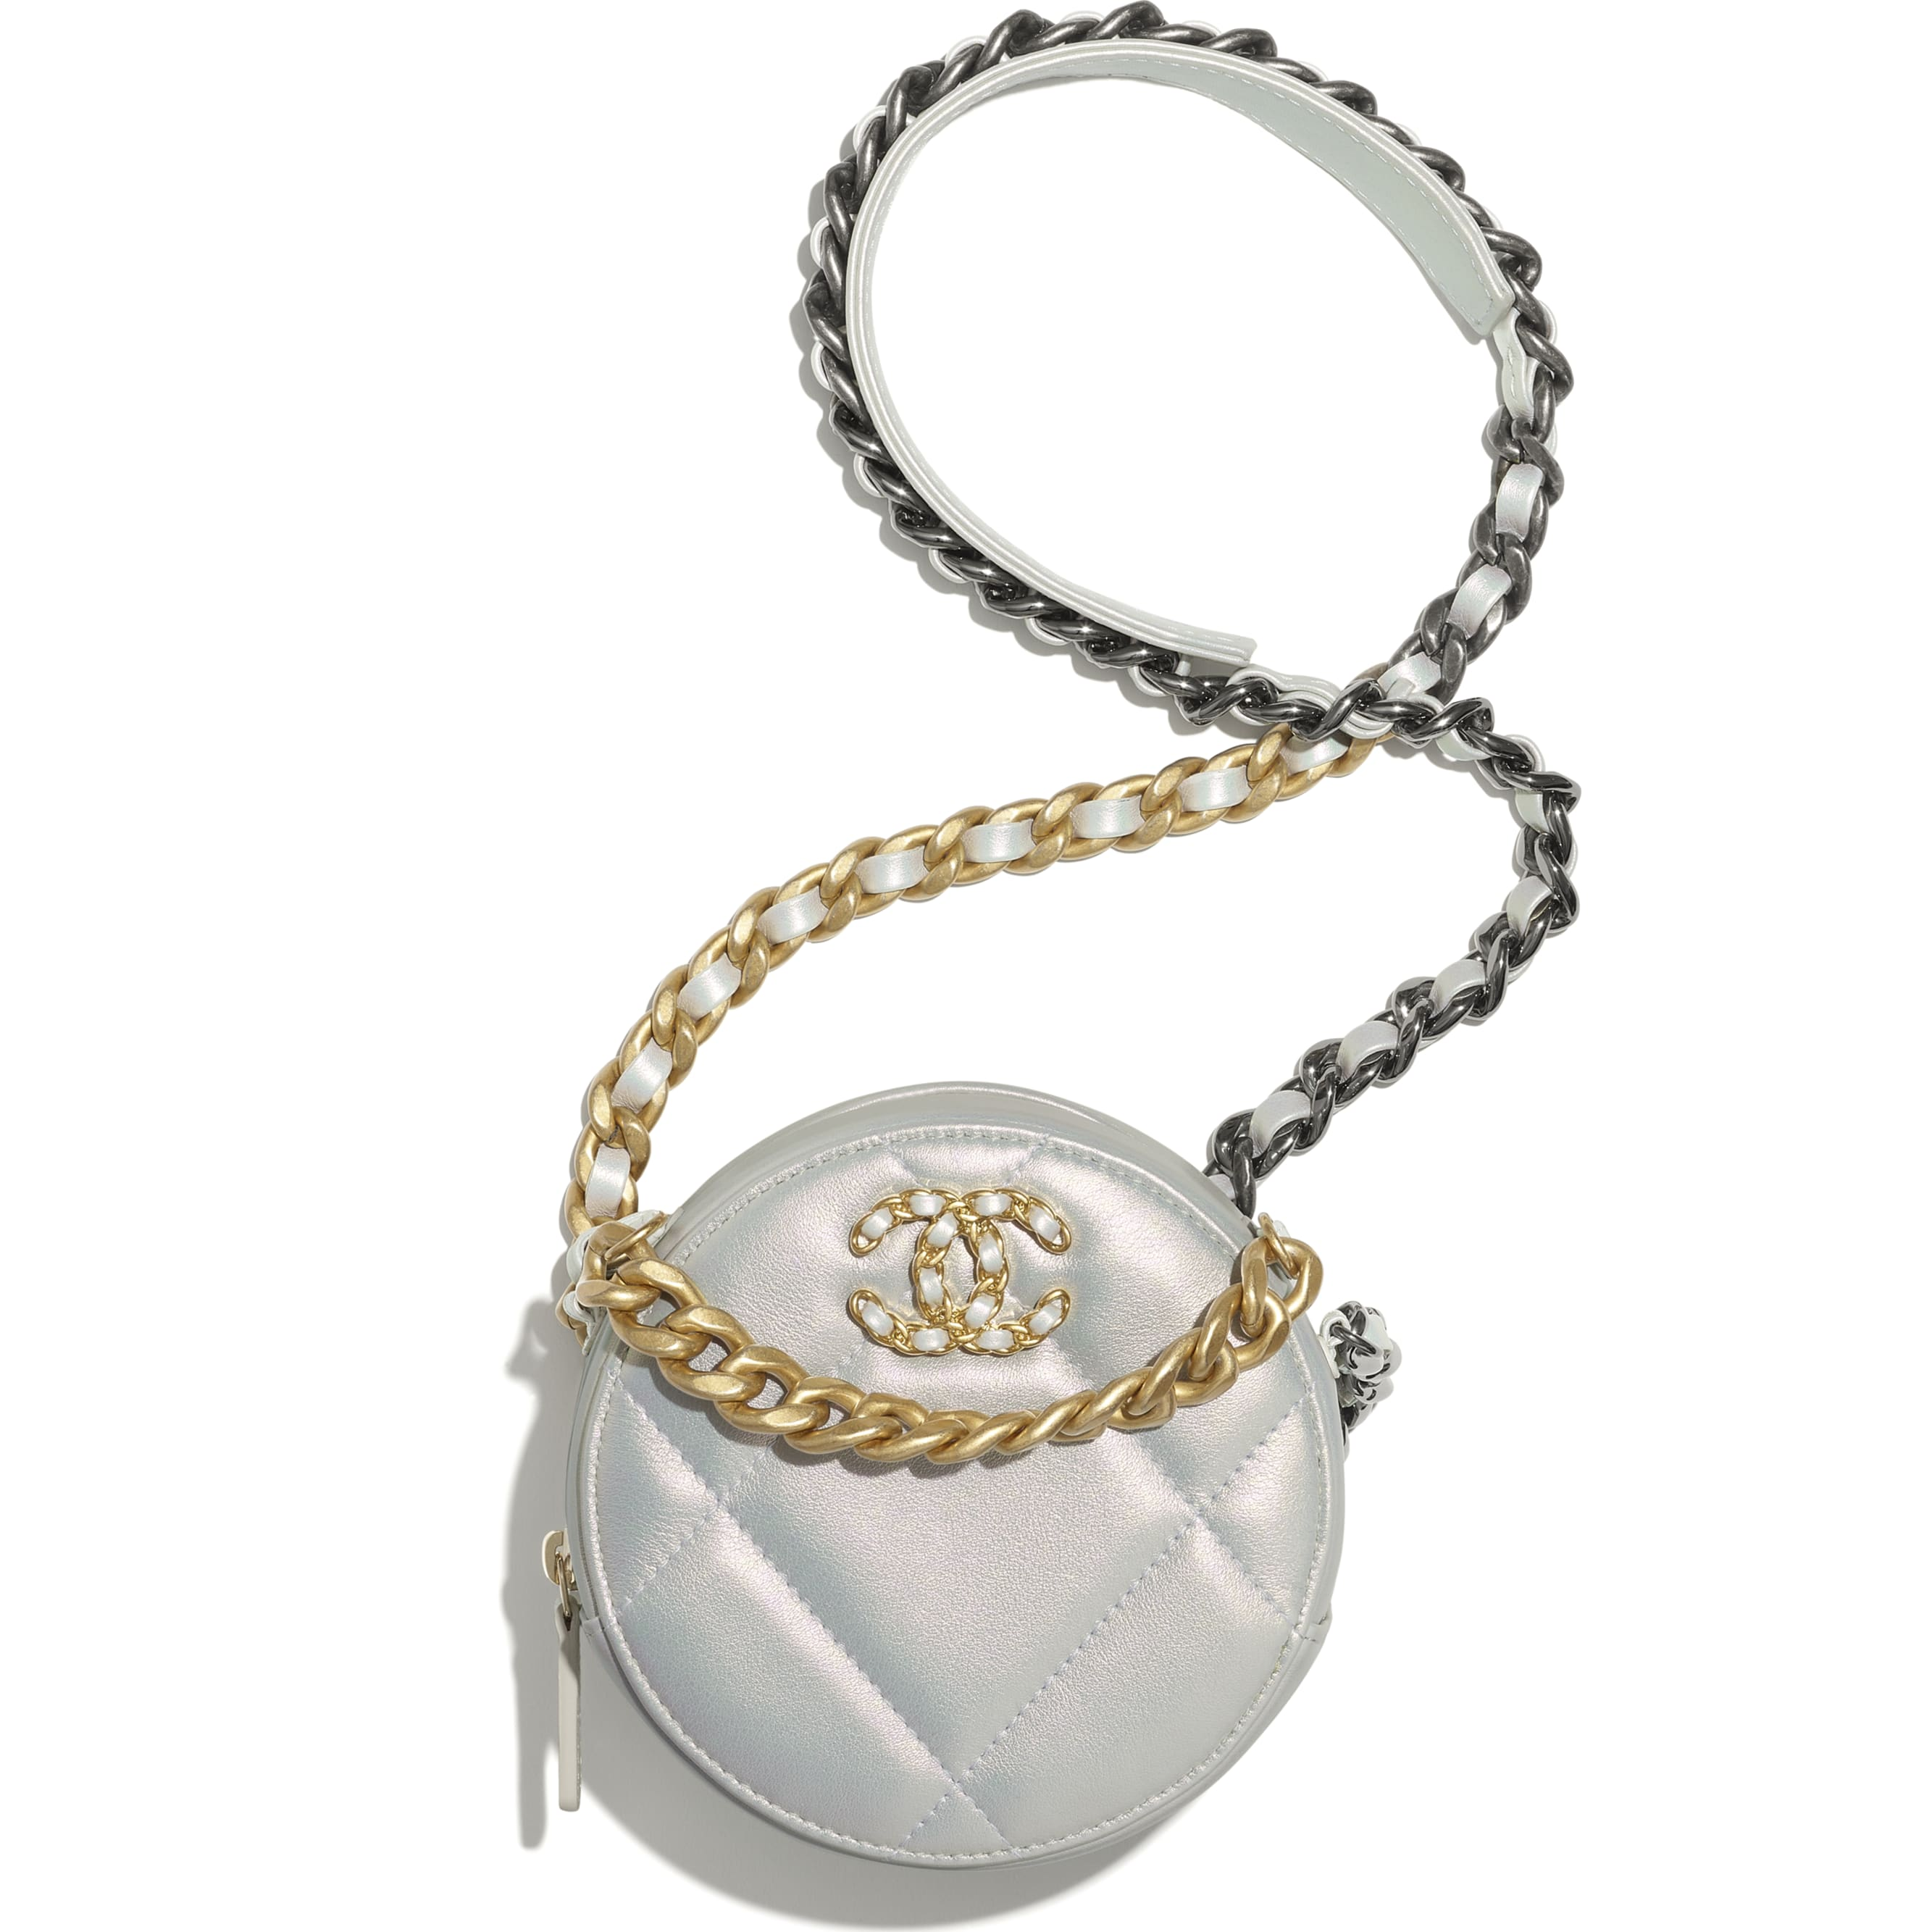 CHANEL 19 Clutch with Chain - White - Iridescent Calfskin, Gold-Tone, Silver-Tone & Ruthenium-Finish Metal - CHANEL - Default view - see standard sized version